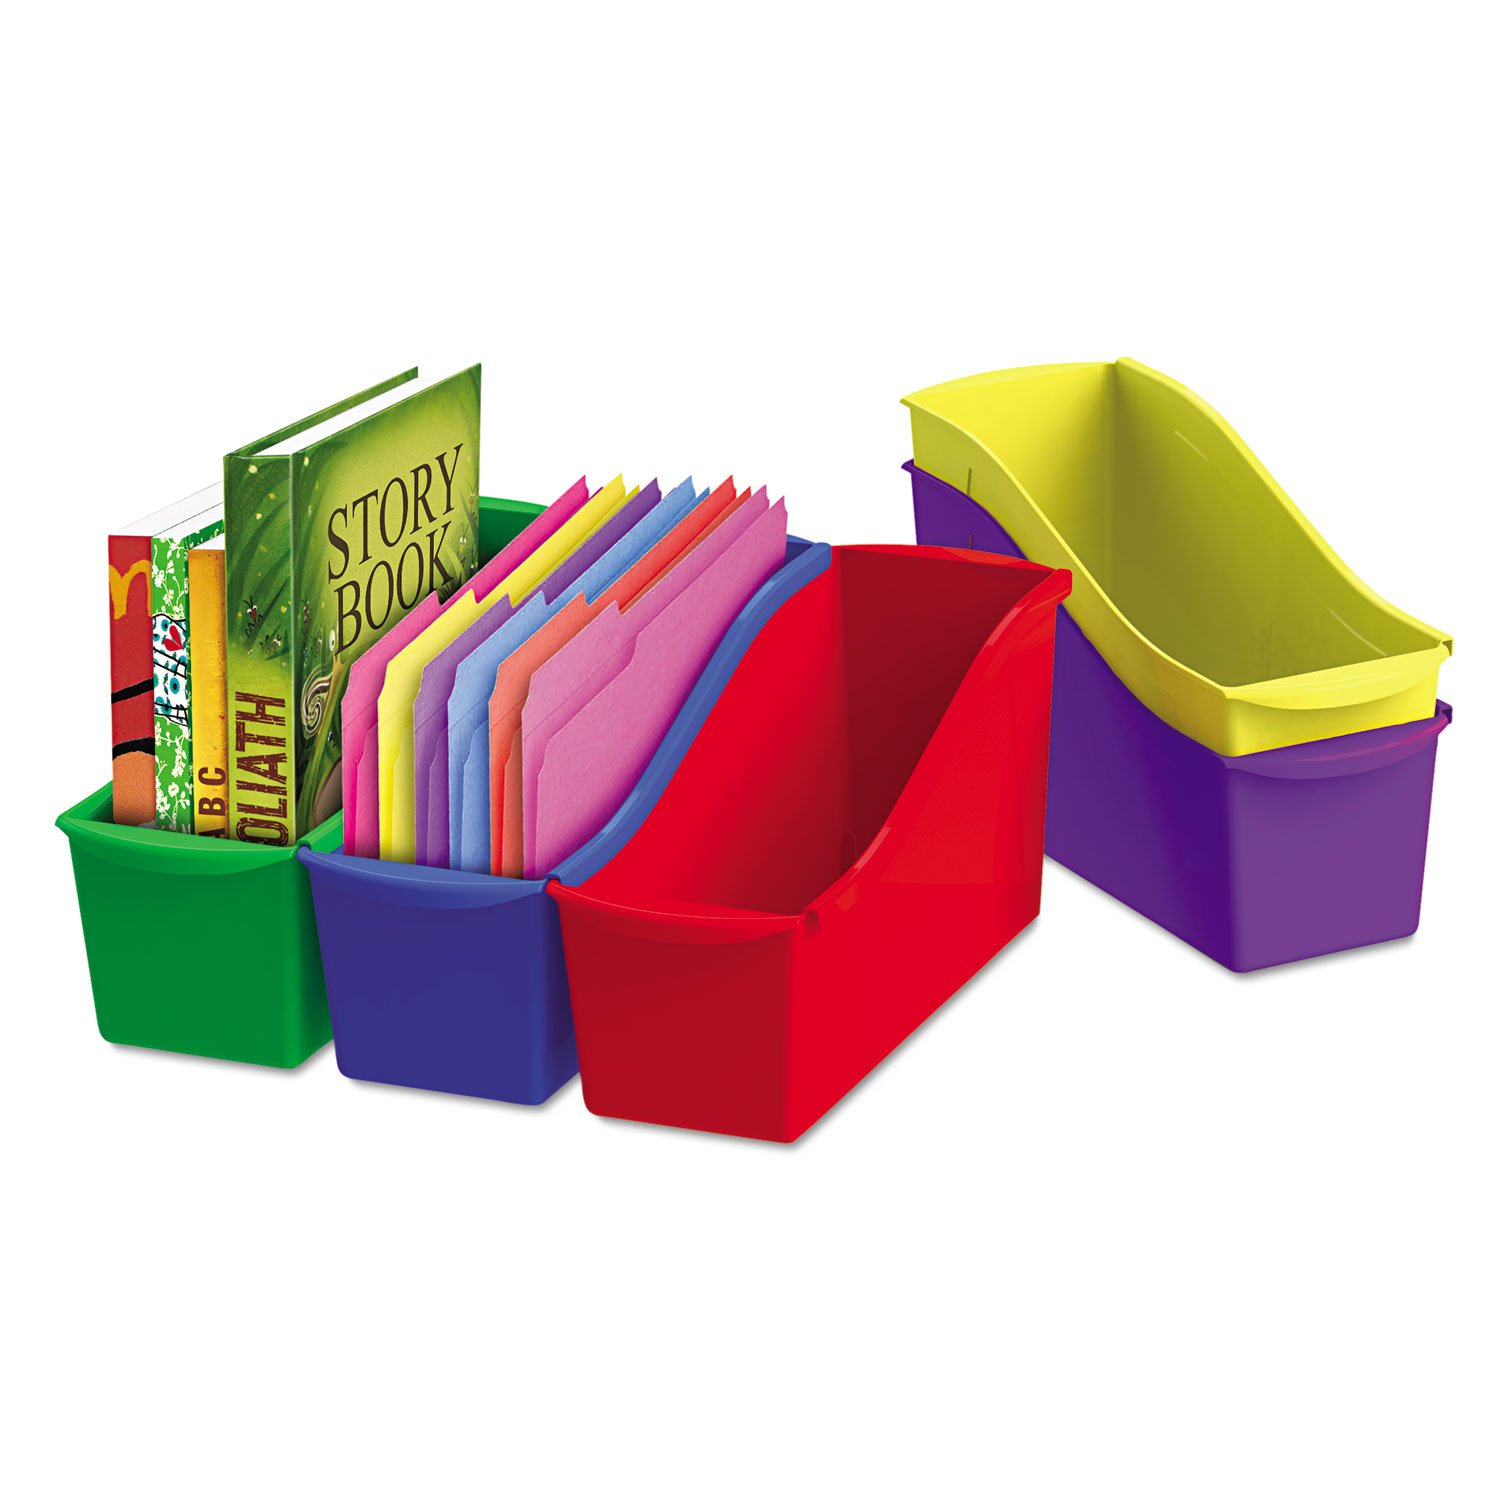 Storex Interlocking Book Bins, 5 1/3 W x 14 1/3 L x 7 H, 5 Color Set, Plastic (70105U06C) Essendant B2B